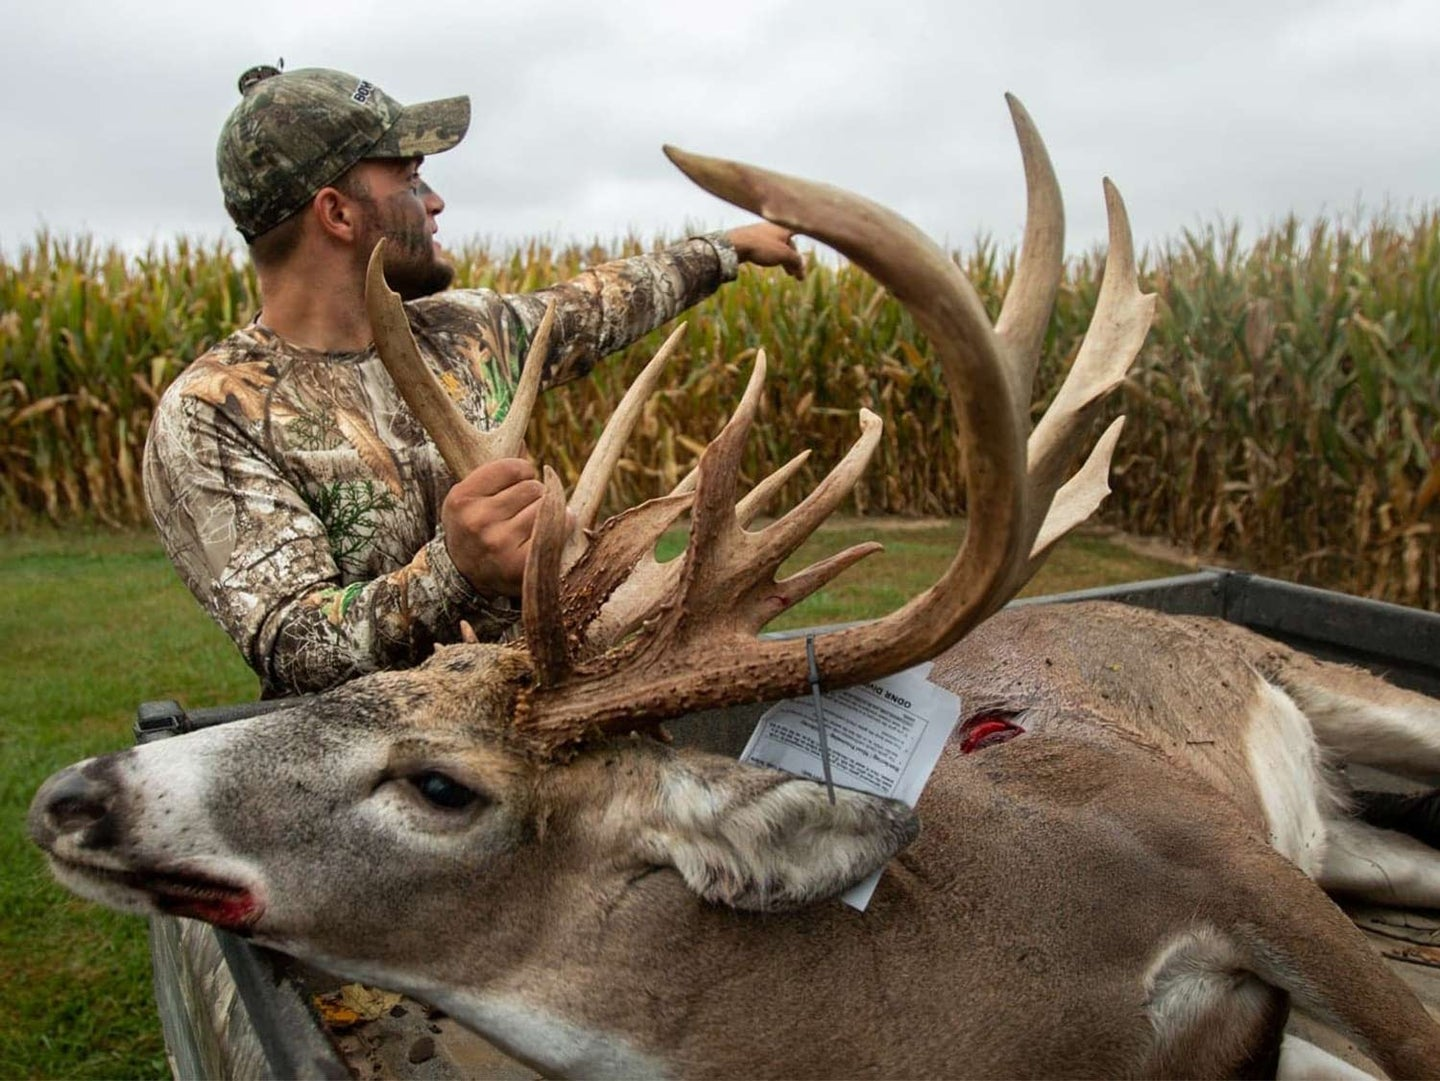 A hunter kneels by a whitetail deer and holds its head by the antlers.